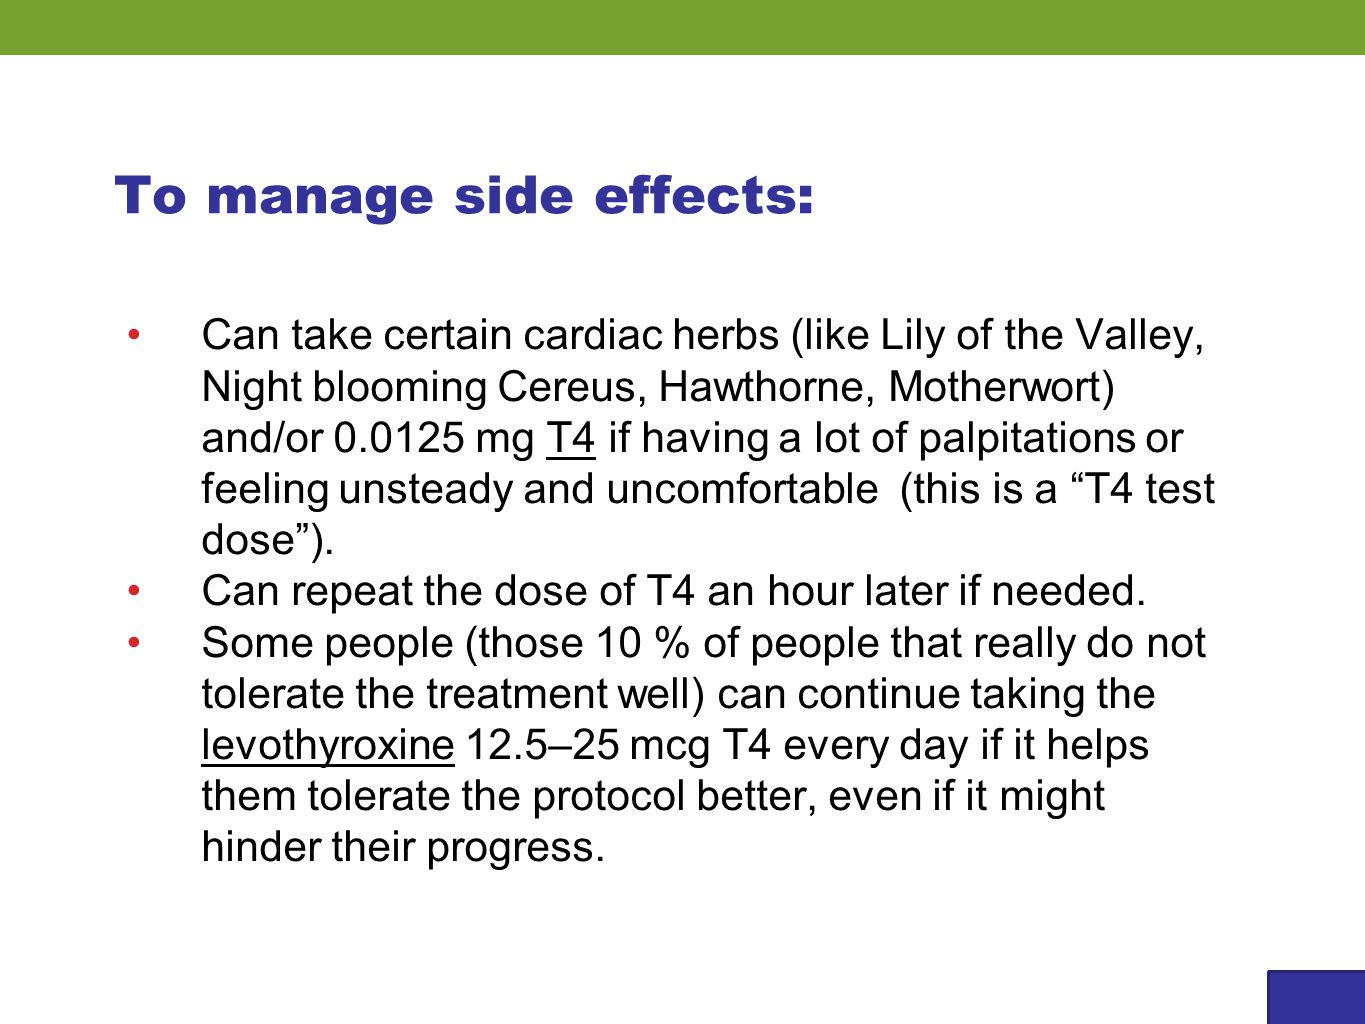 To manage side effects: Can take certain cardiac herbs (like Lily of the Valley, Night blooming Cereus, Hawthorne, Motherwort) and/or 0.0125 mg T4 if